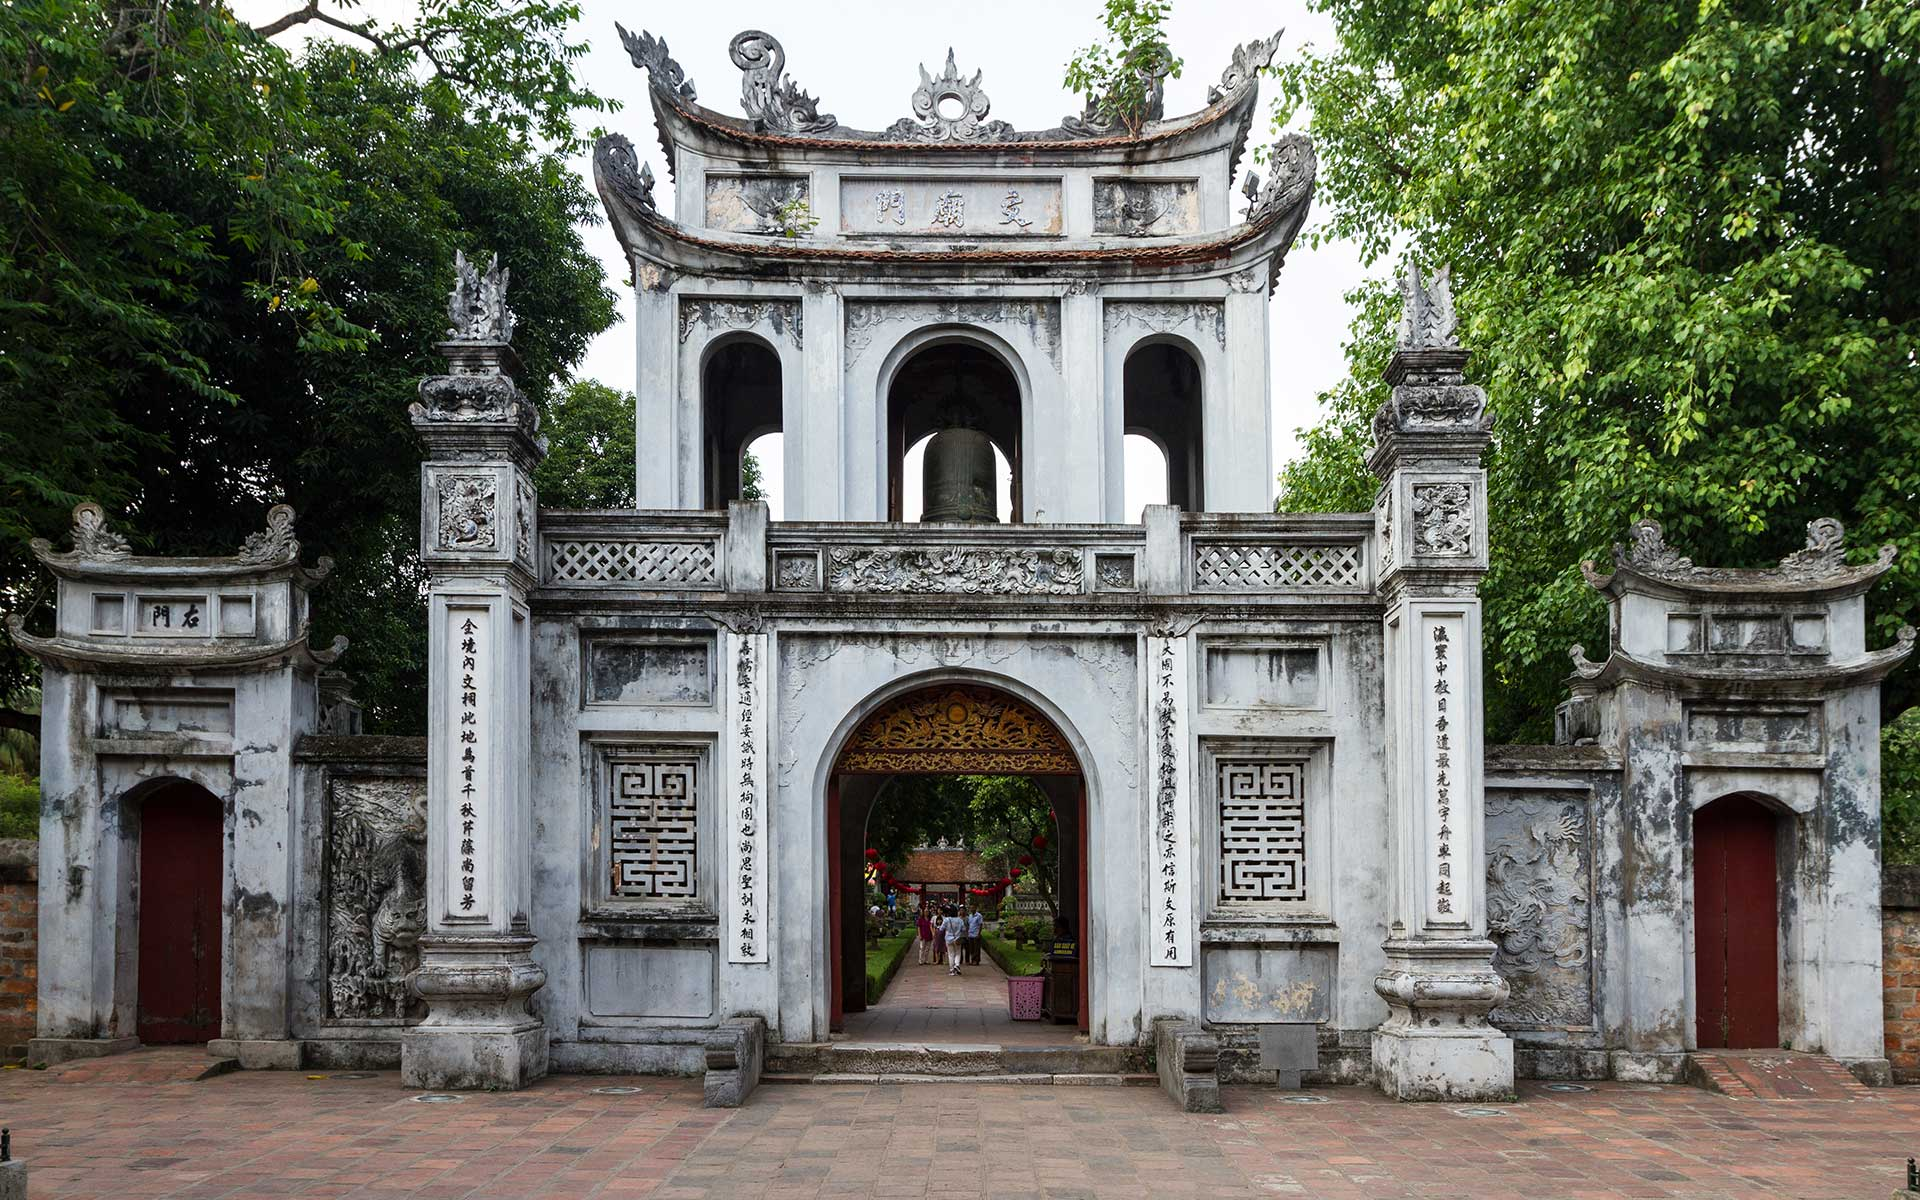 Temple of Literature's front gate